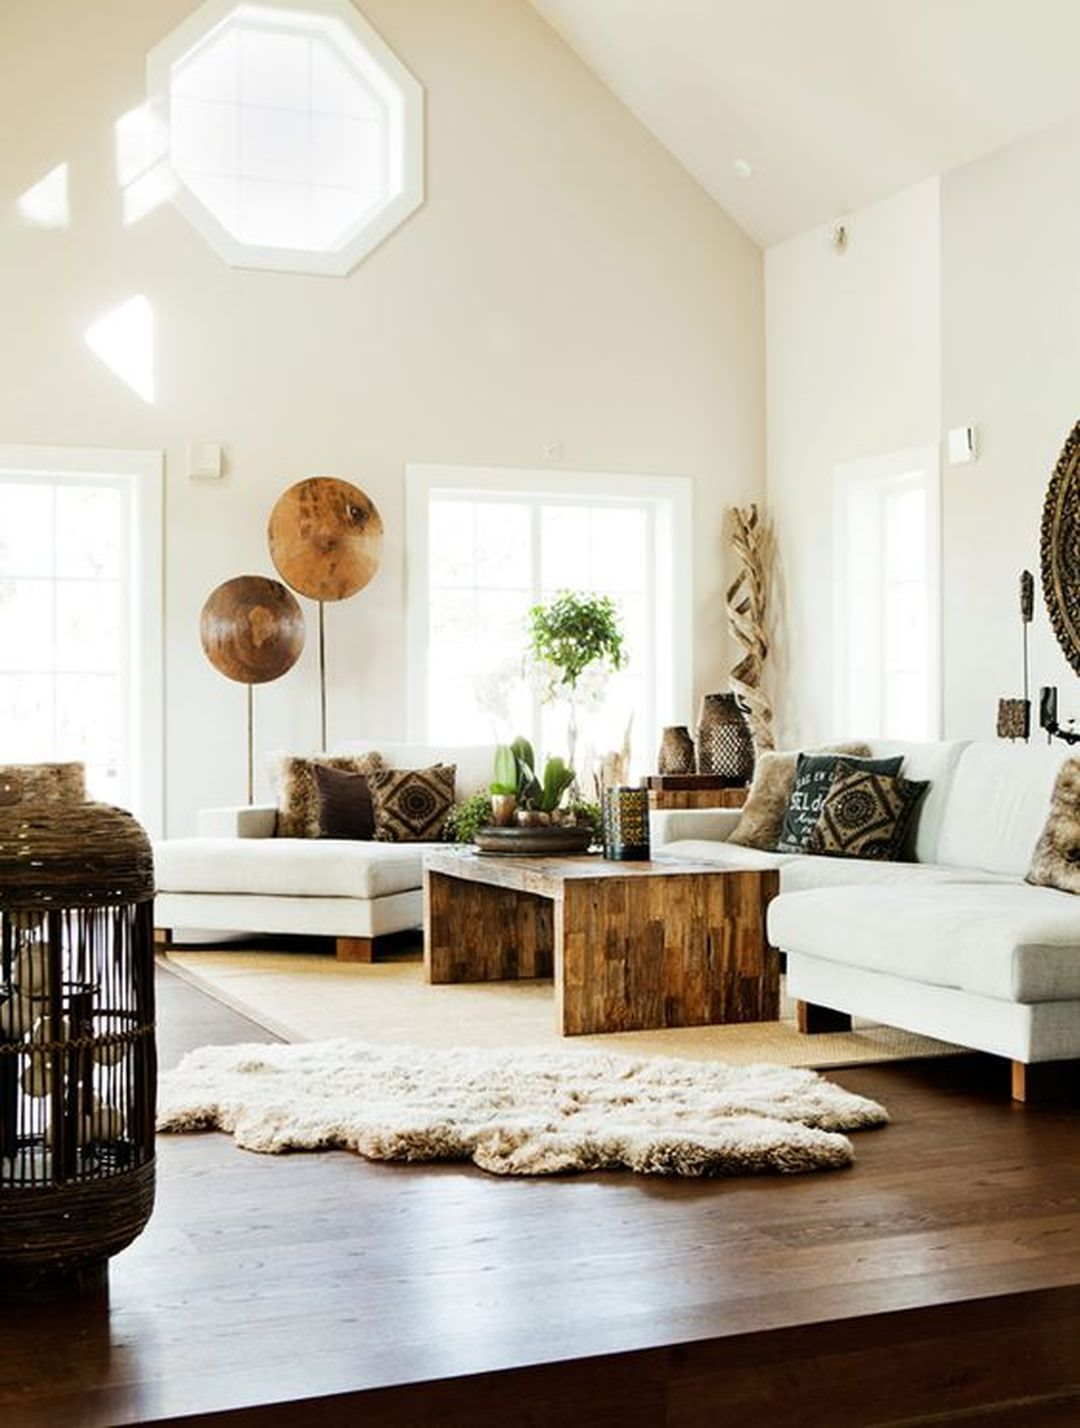 23 Asian Inspired Living Room Decor | Room decor, Room and Outdoor decor